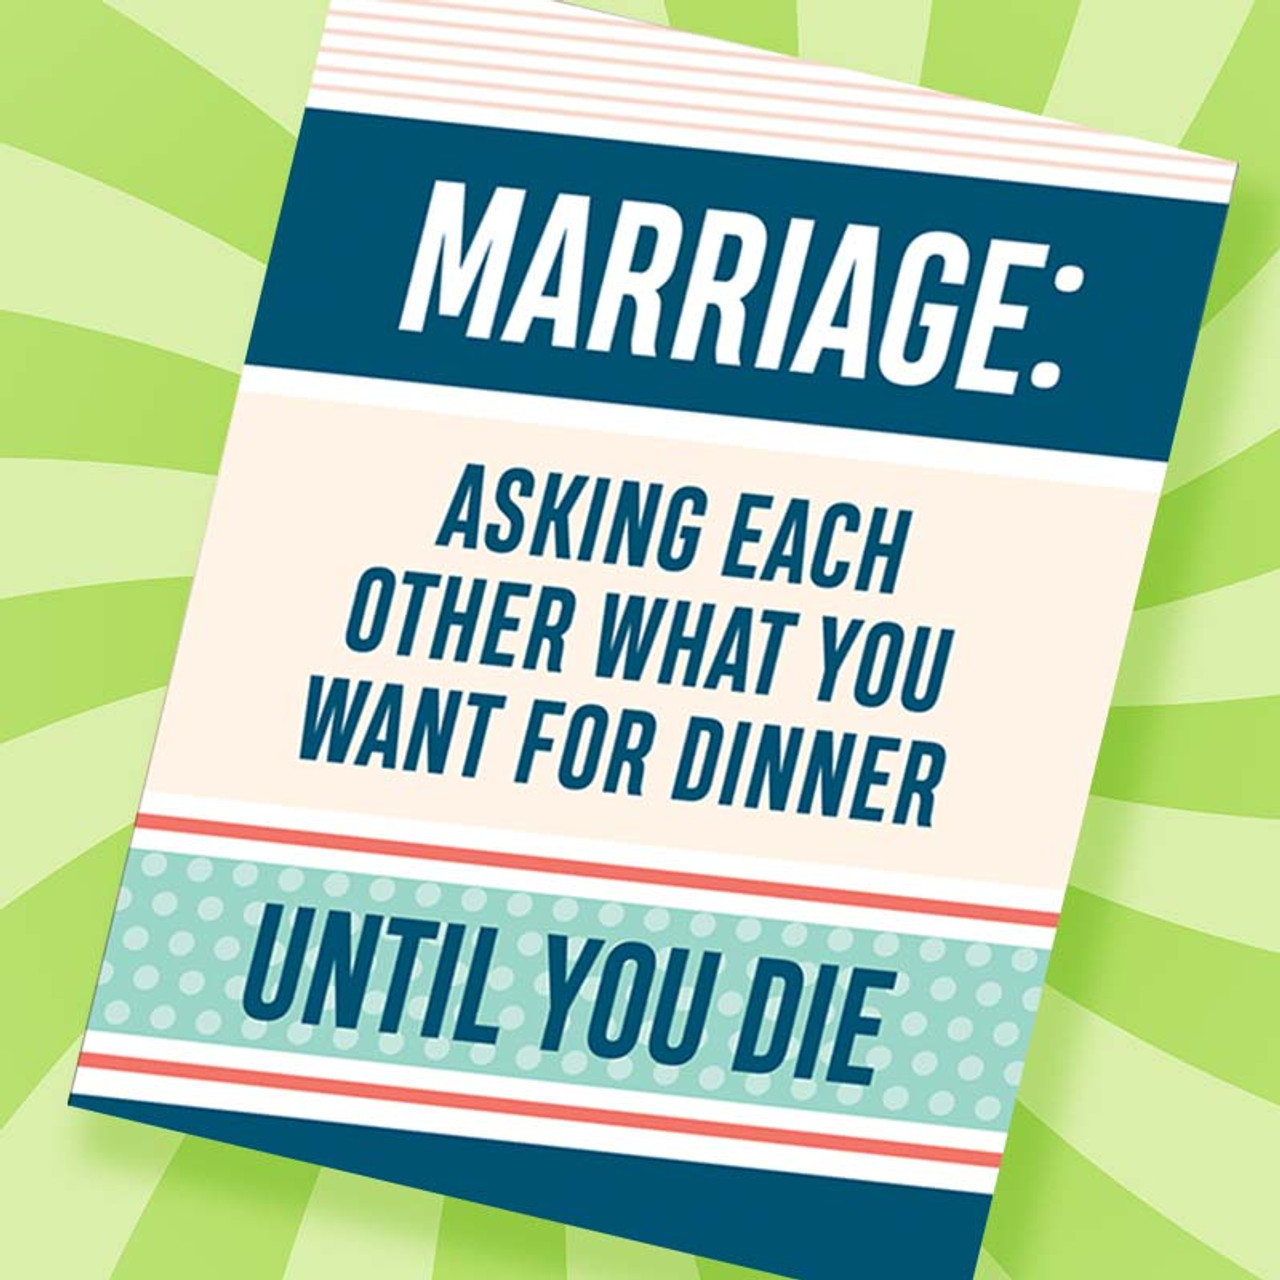 Marriage: Asking Each Other What You Want For Dinner Until You Die